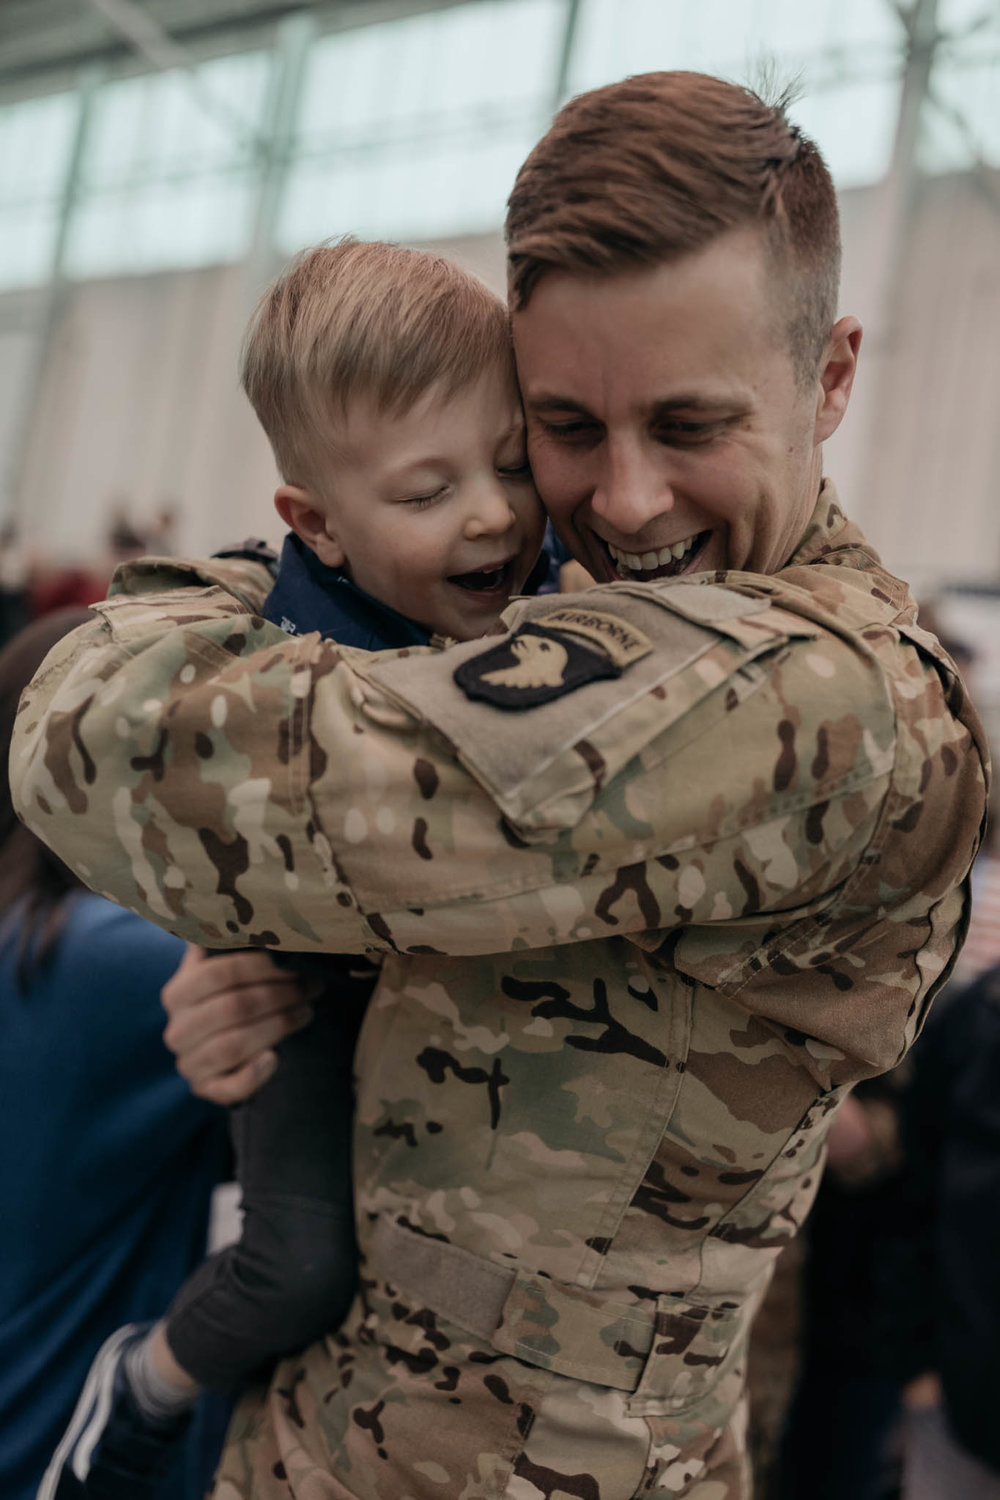 Father Holding and Hugging Son